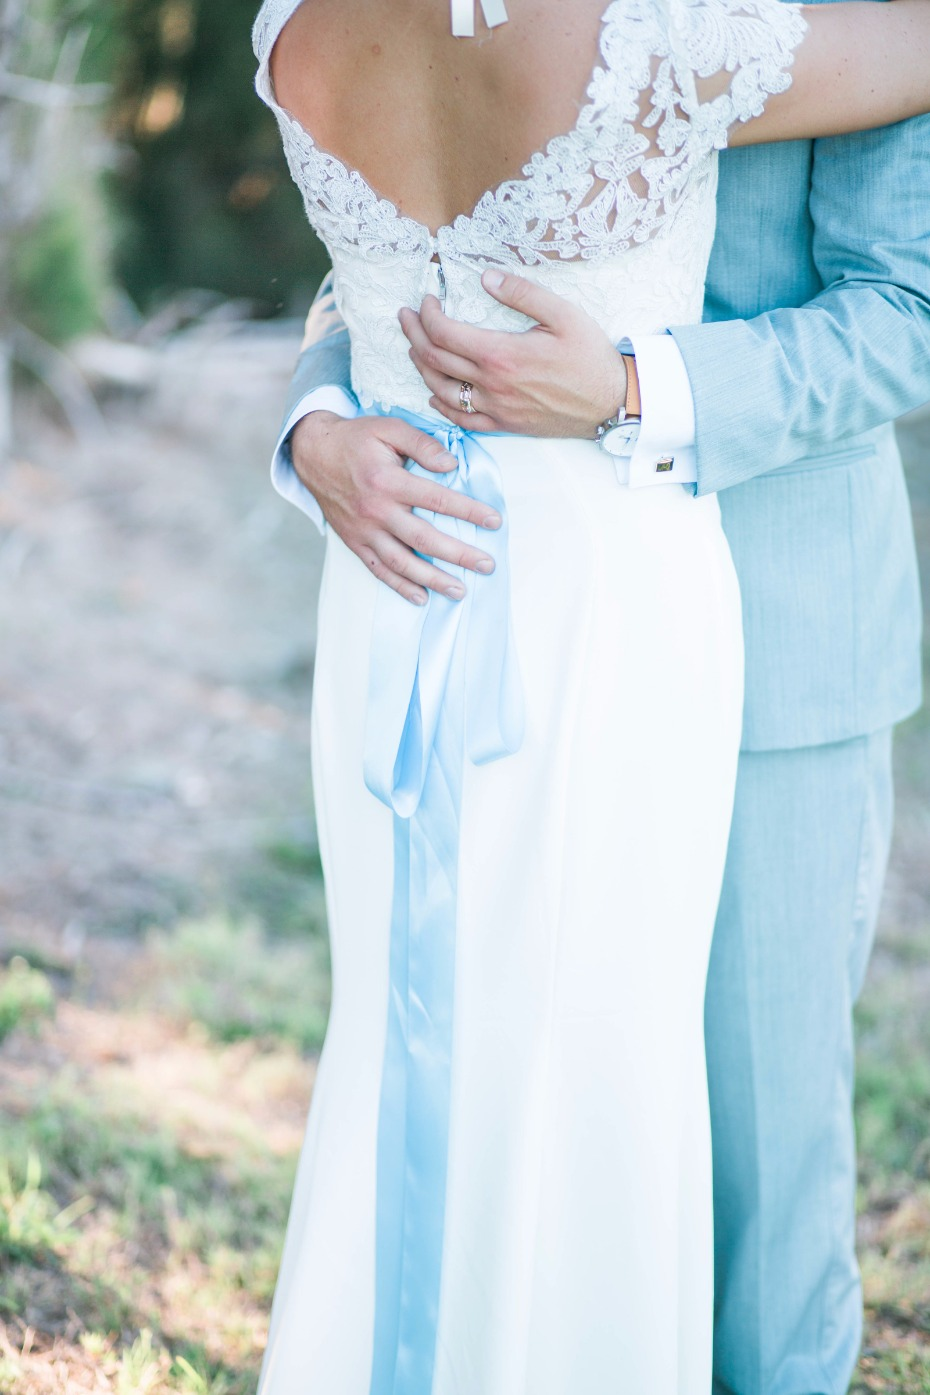 blue sash wedding dress